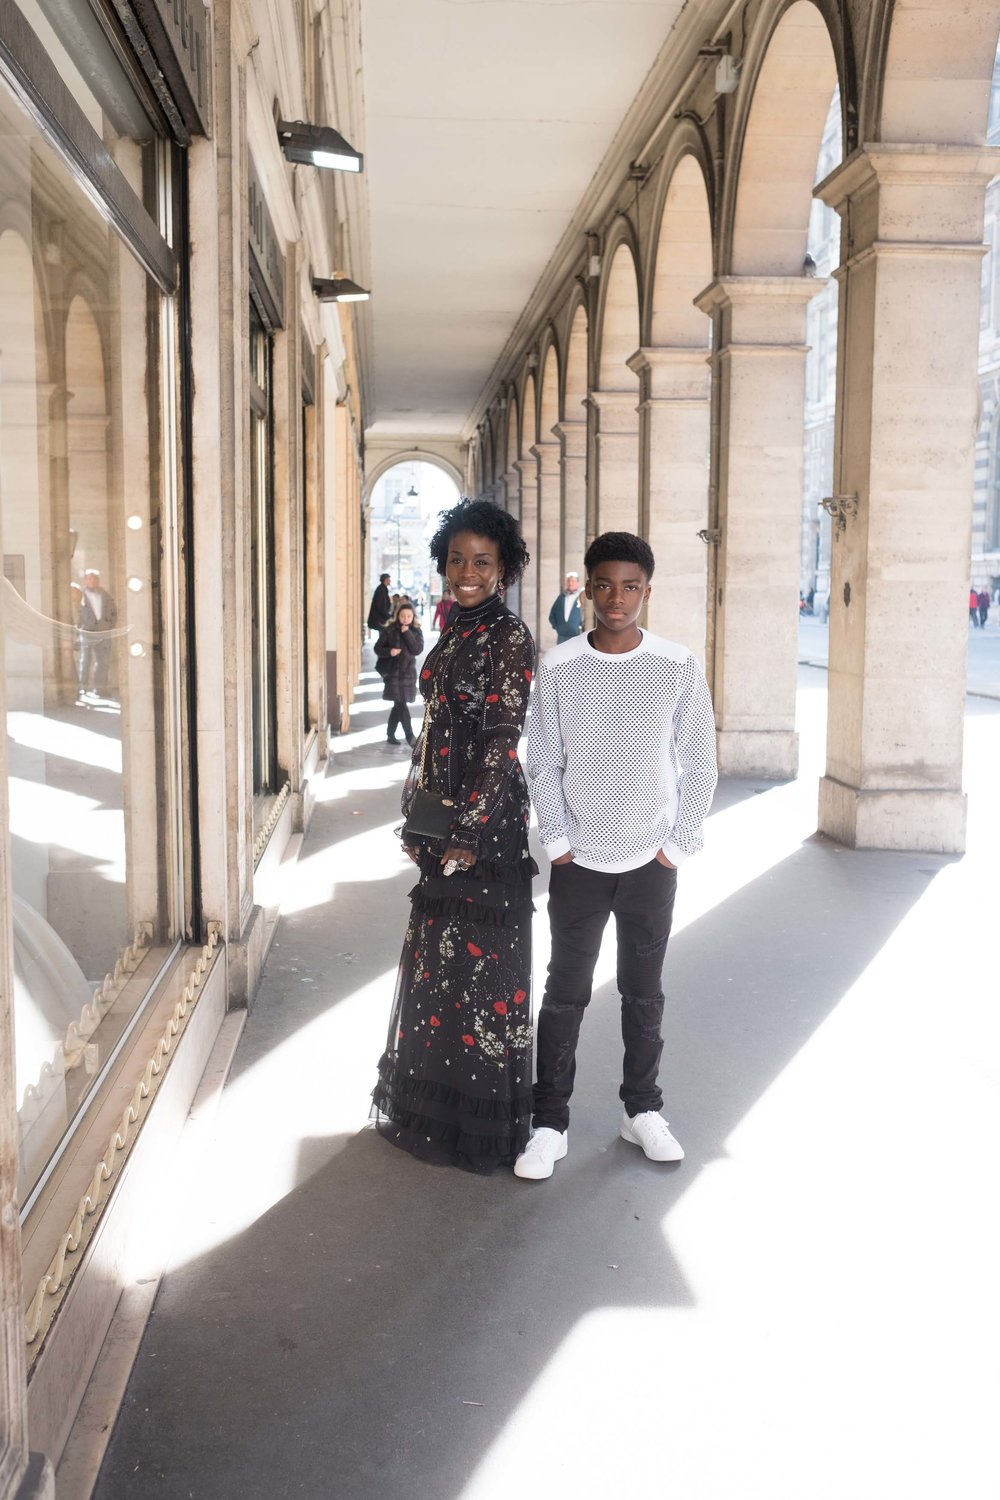 Adorable mother and son posing outside the Louvre Museum in Paris